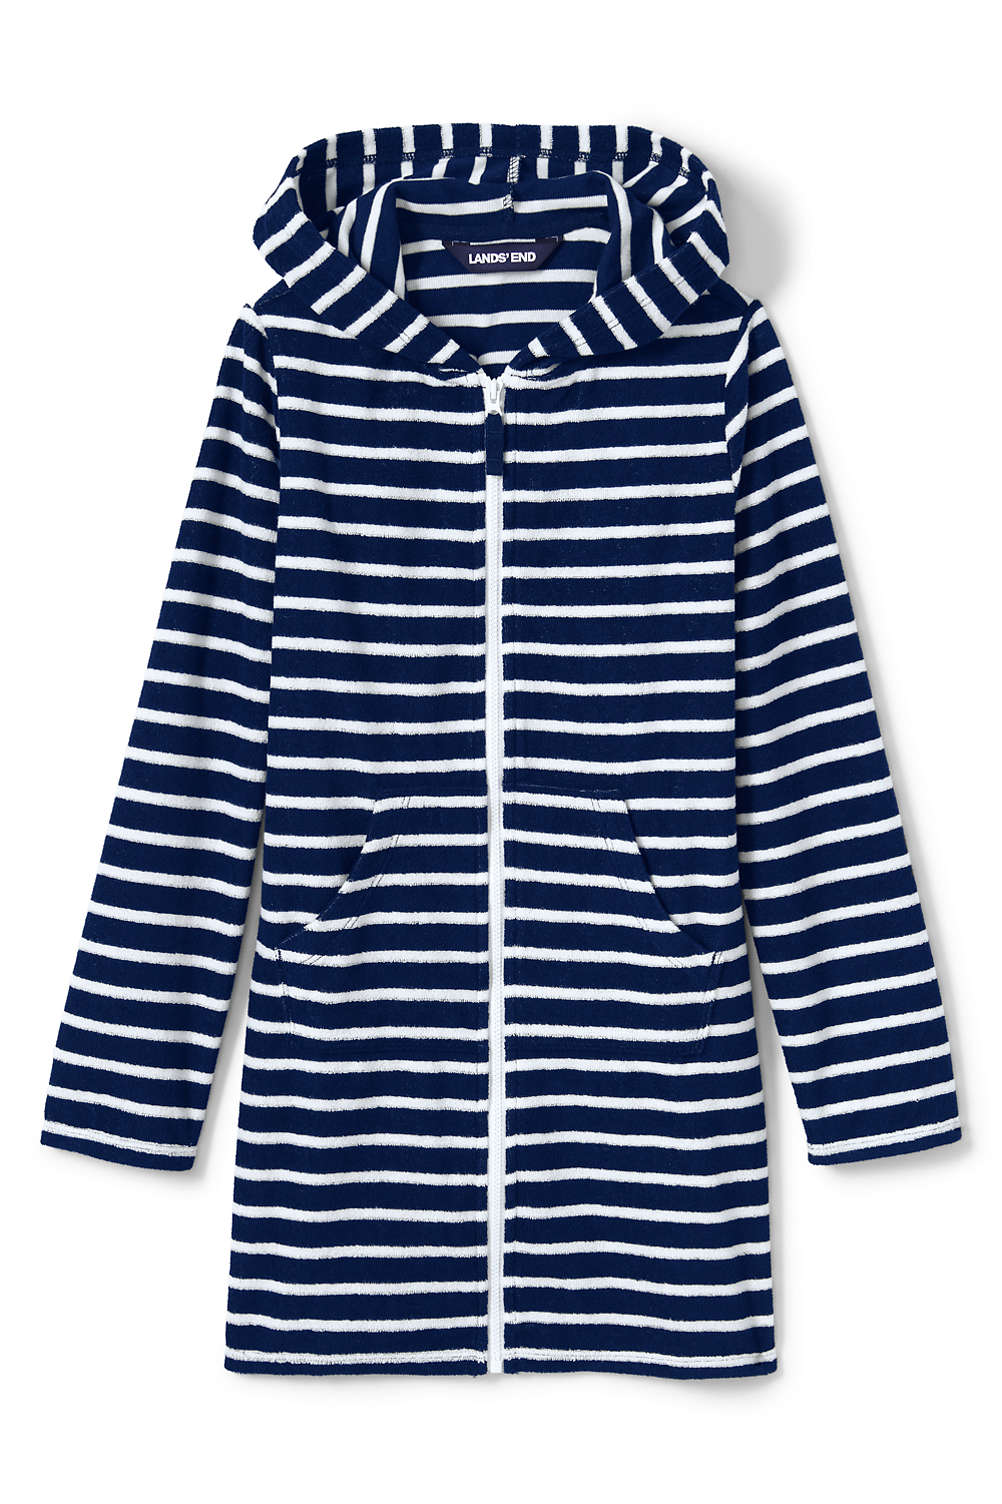 a87a40ed18ec2 Girls Stripe Kangaroo Pocket Swim Cover-Up from Lands' End